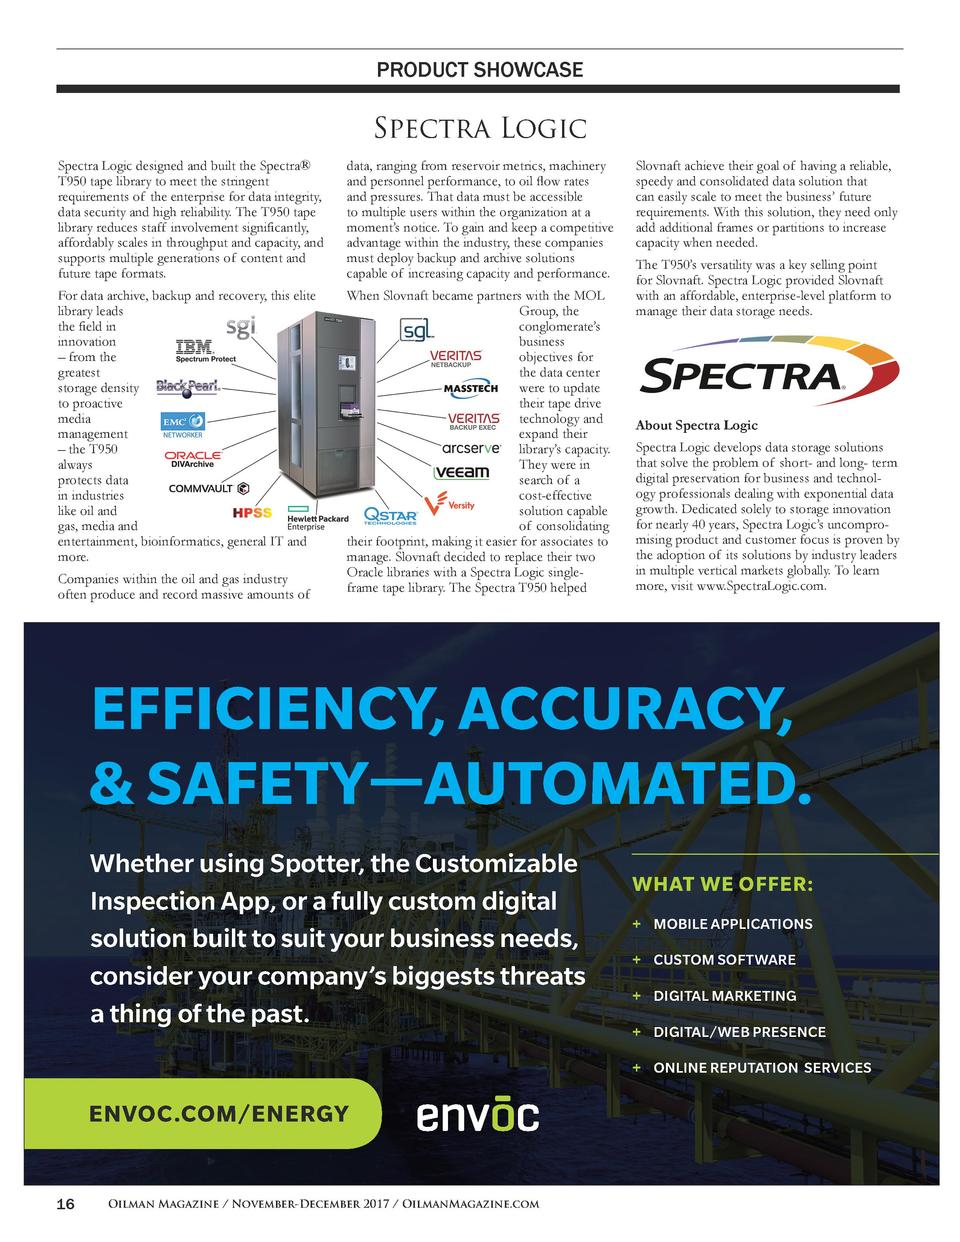 PRODUCT SHOWCASE  Spectra Logic Spectra Logic designed and built the Spectra   T950 tape library to meet the stringent req...